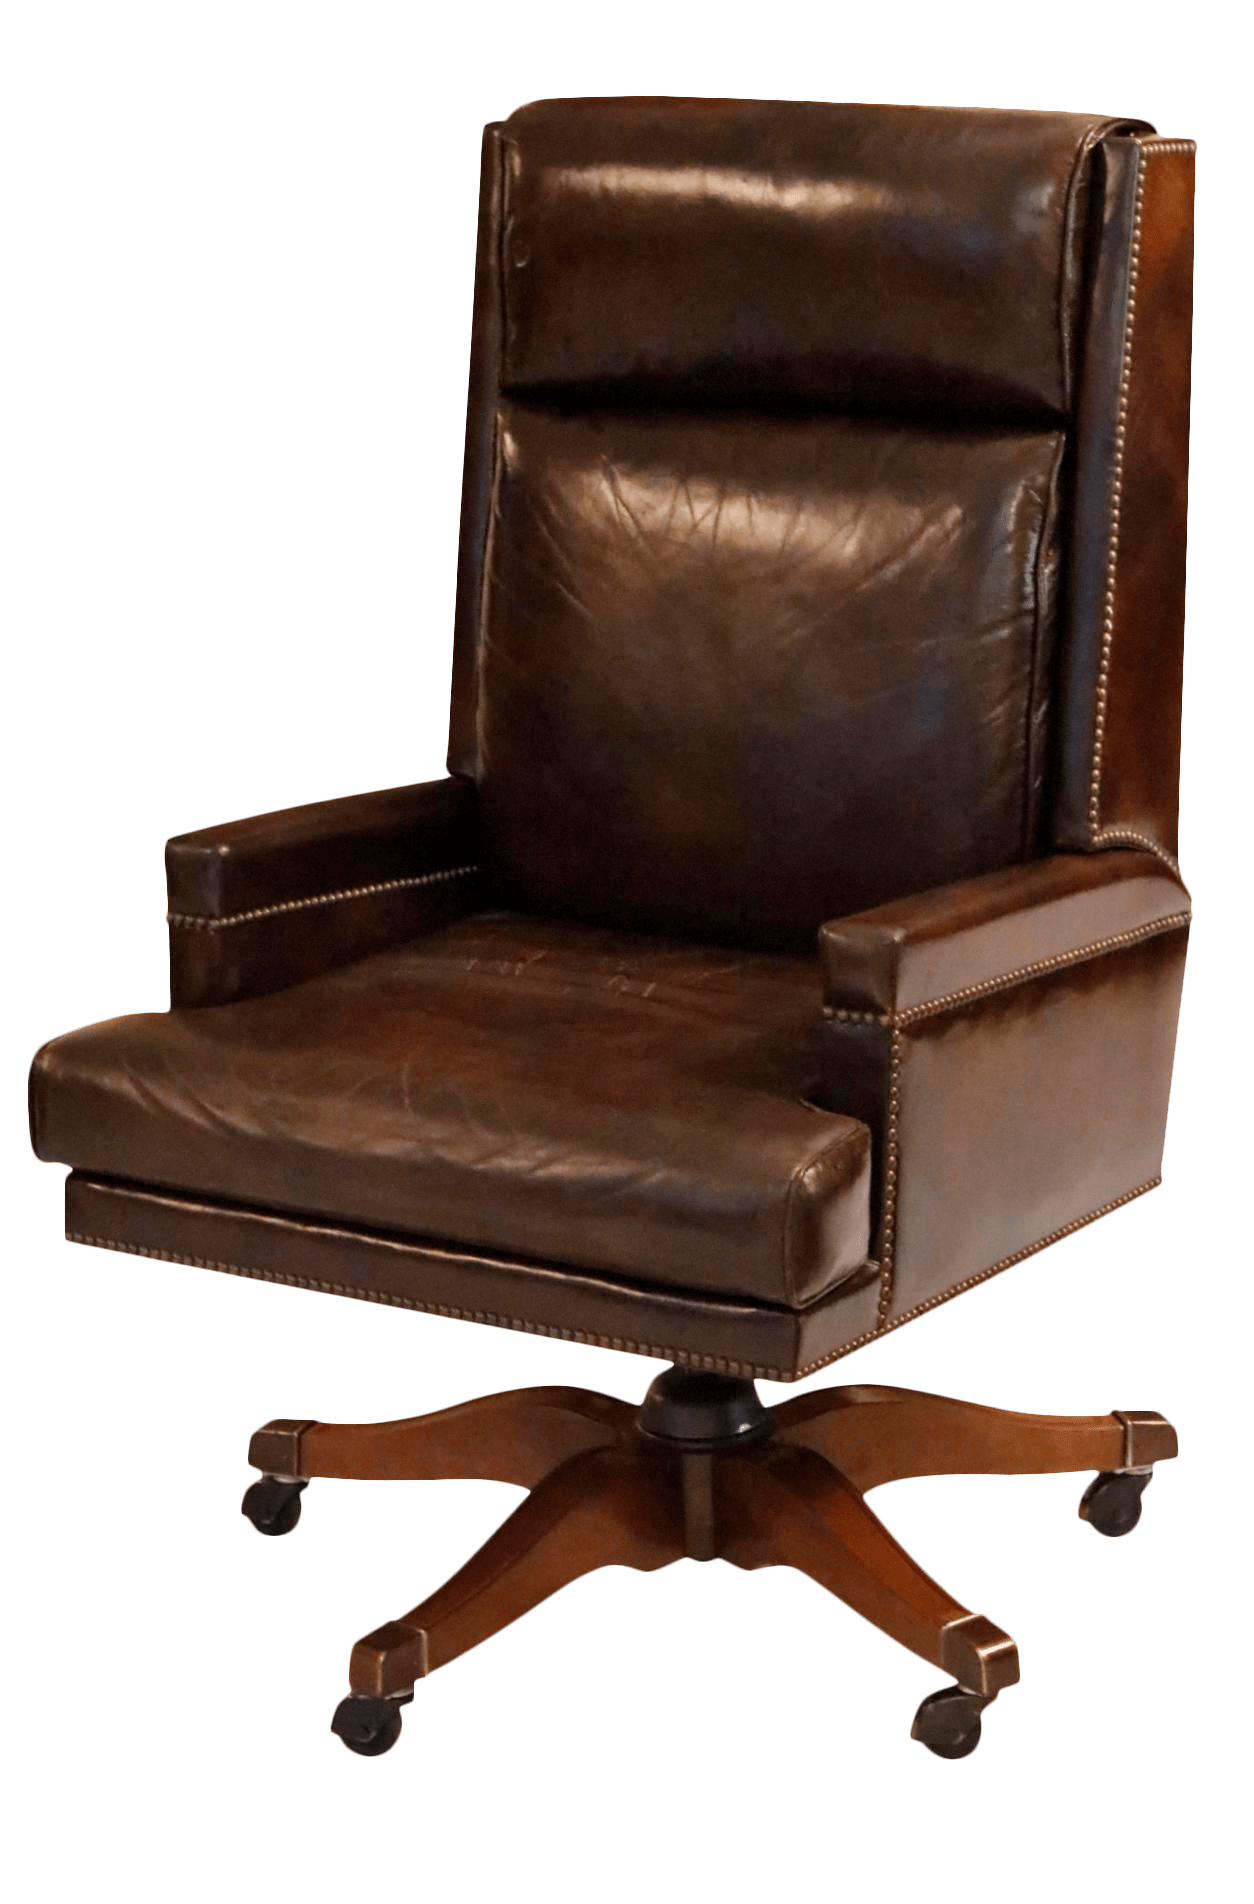 desk chair made executive chairman vs leather by baker furniture chairish for sale